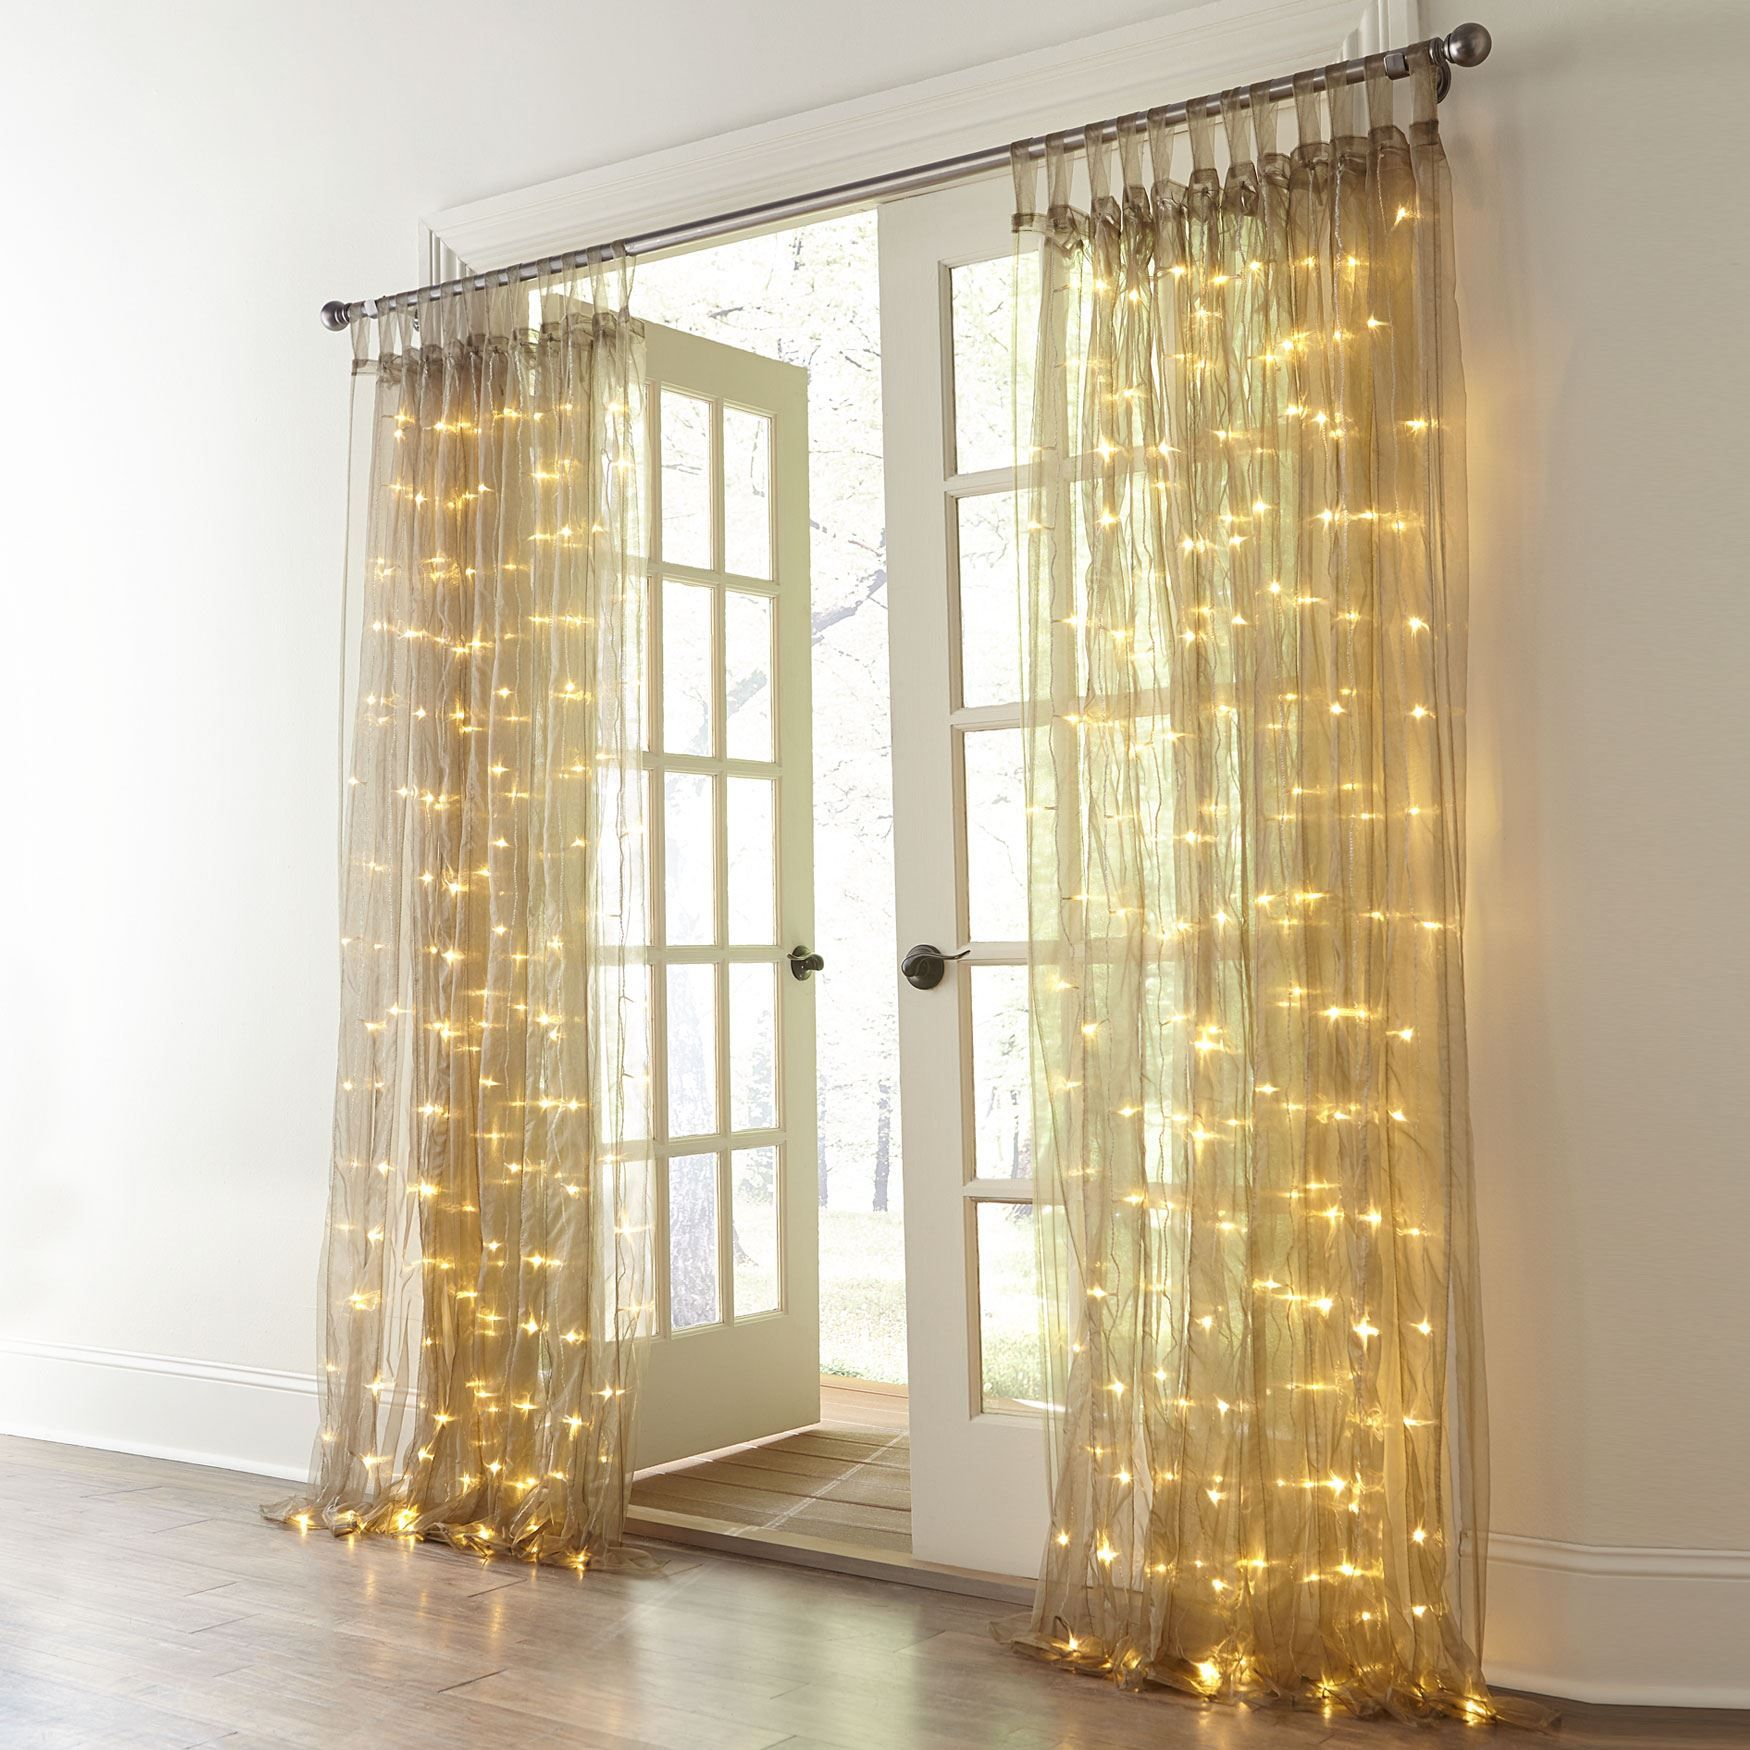 Illuminate Your Window With This Lighted Screen Curtain Just Plug